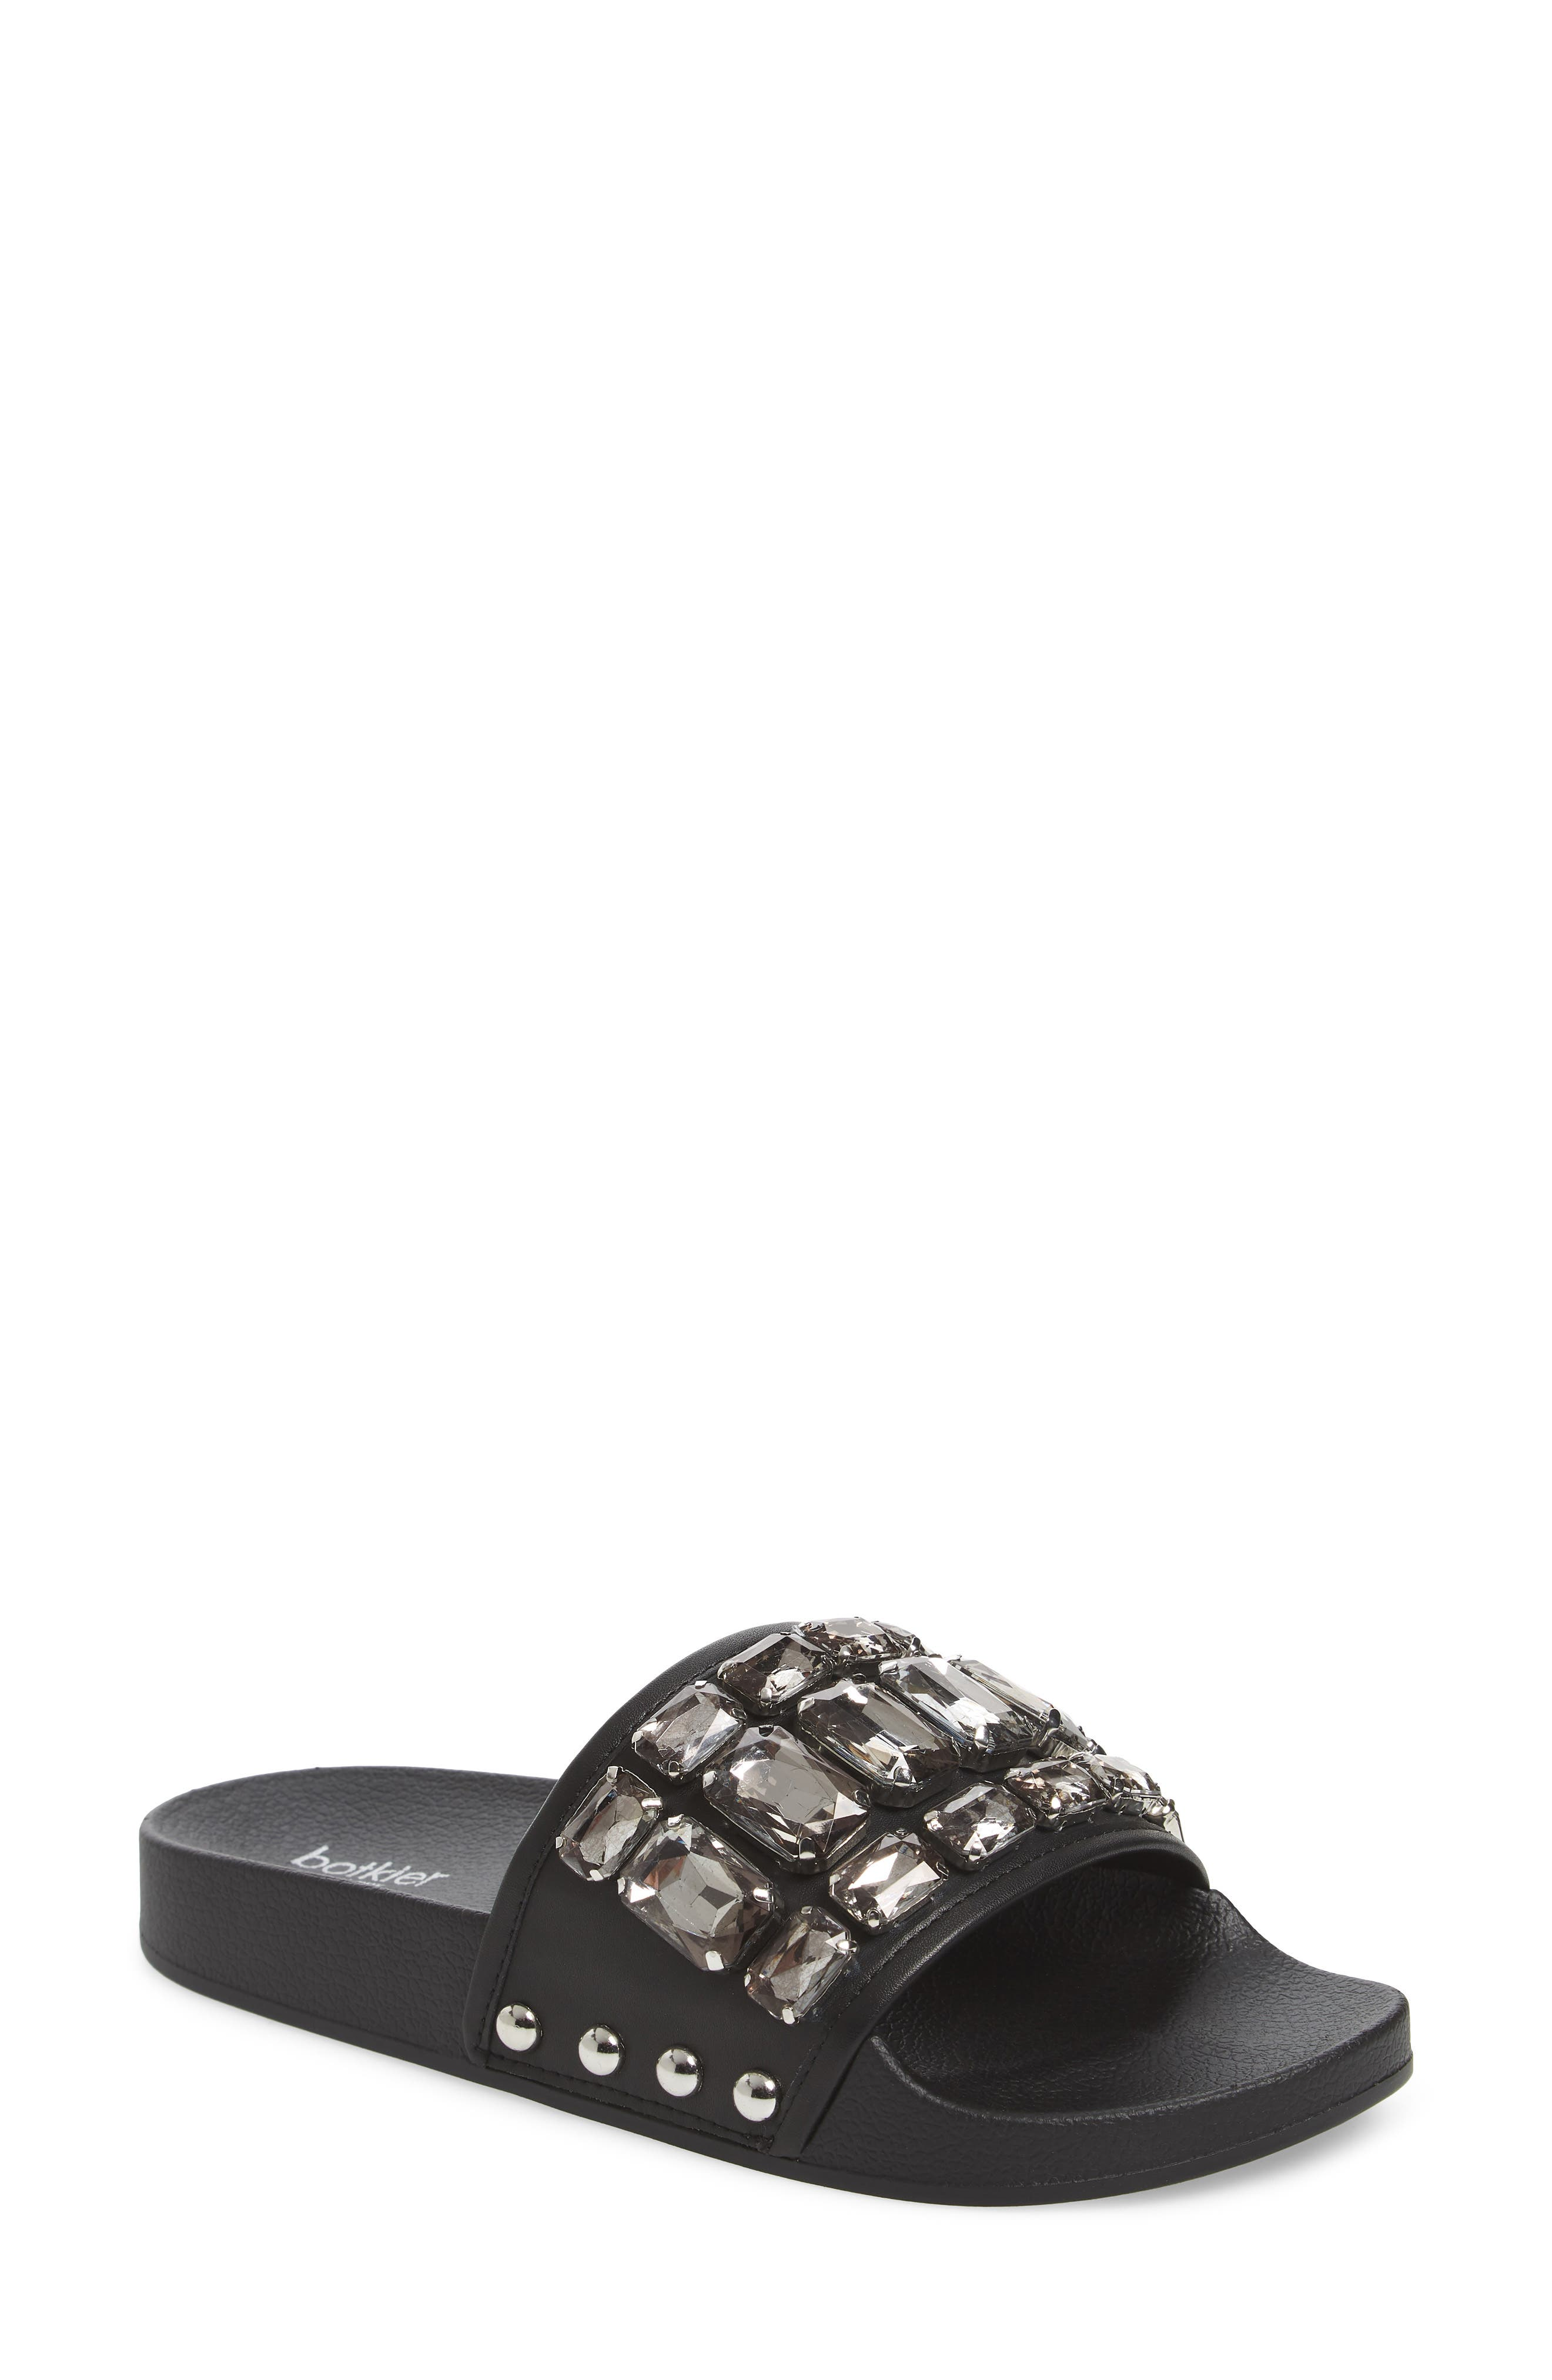 Freda Crystal Slide Sandal,                             Main thumbnail 1, color,                             BLACK LEATHER